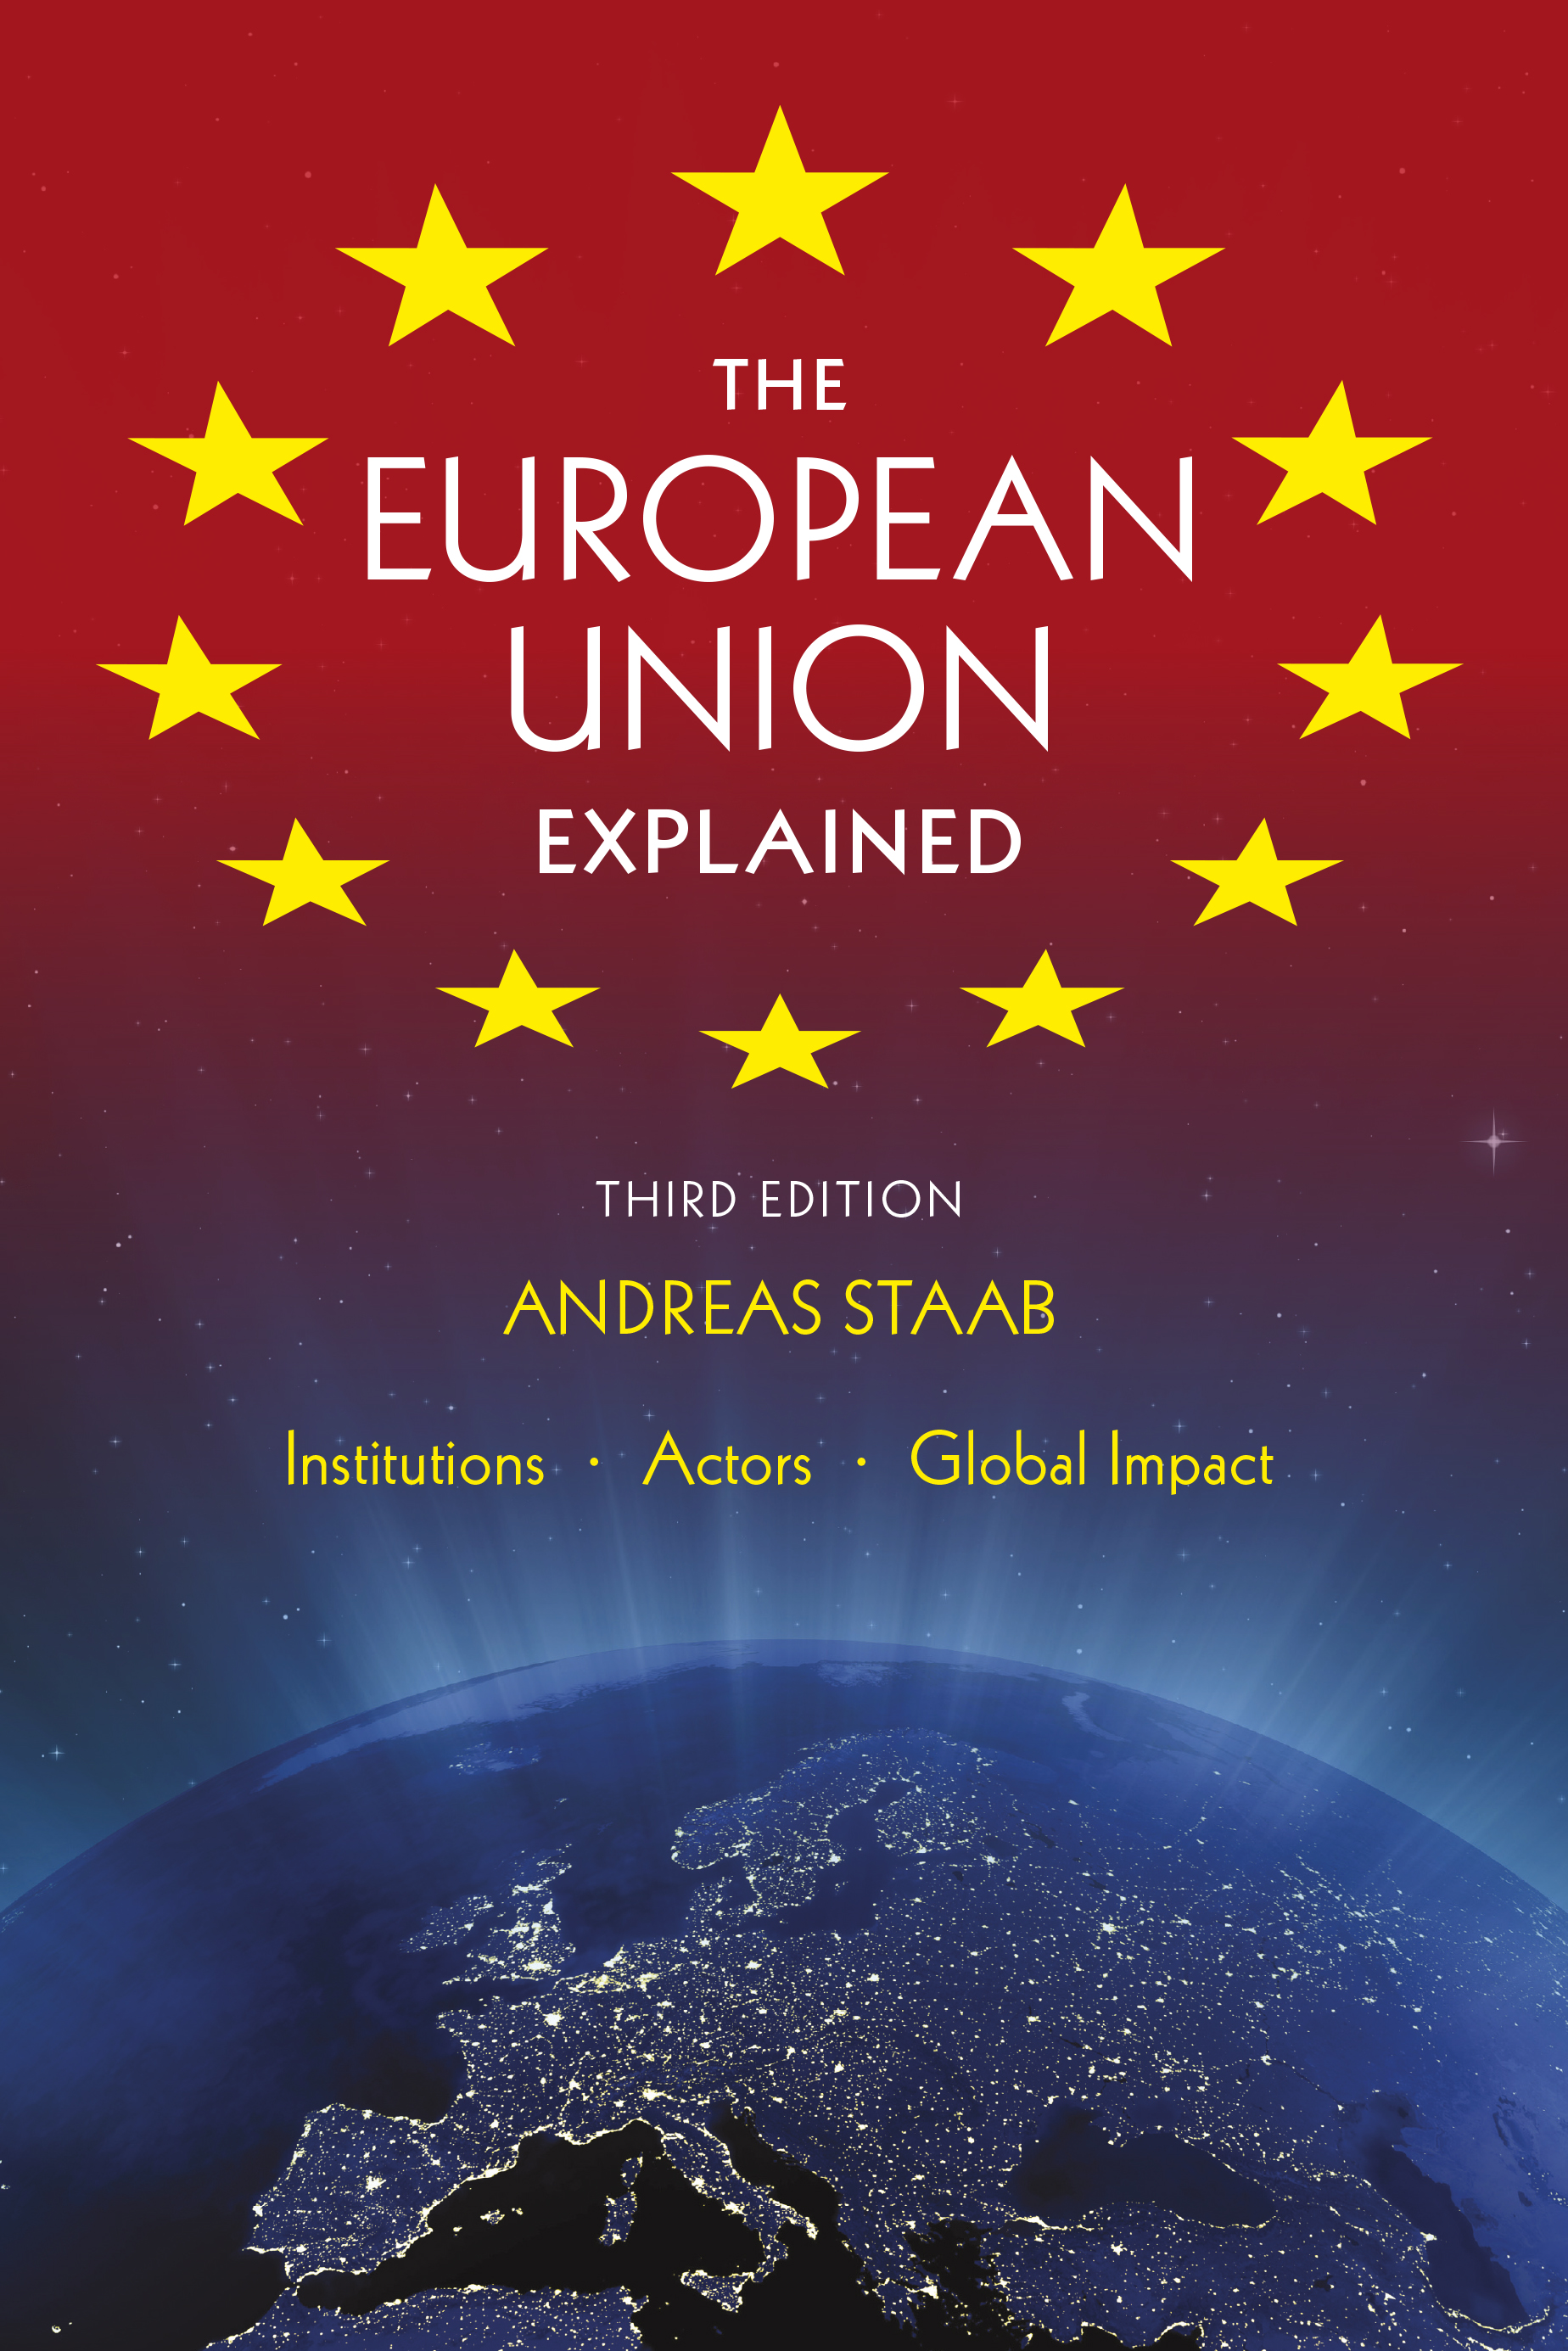 Download Ebook The European Union Explained, Third Edition (3rd ed.) by Andreas Staab Pdf